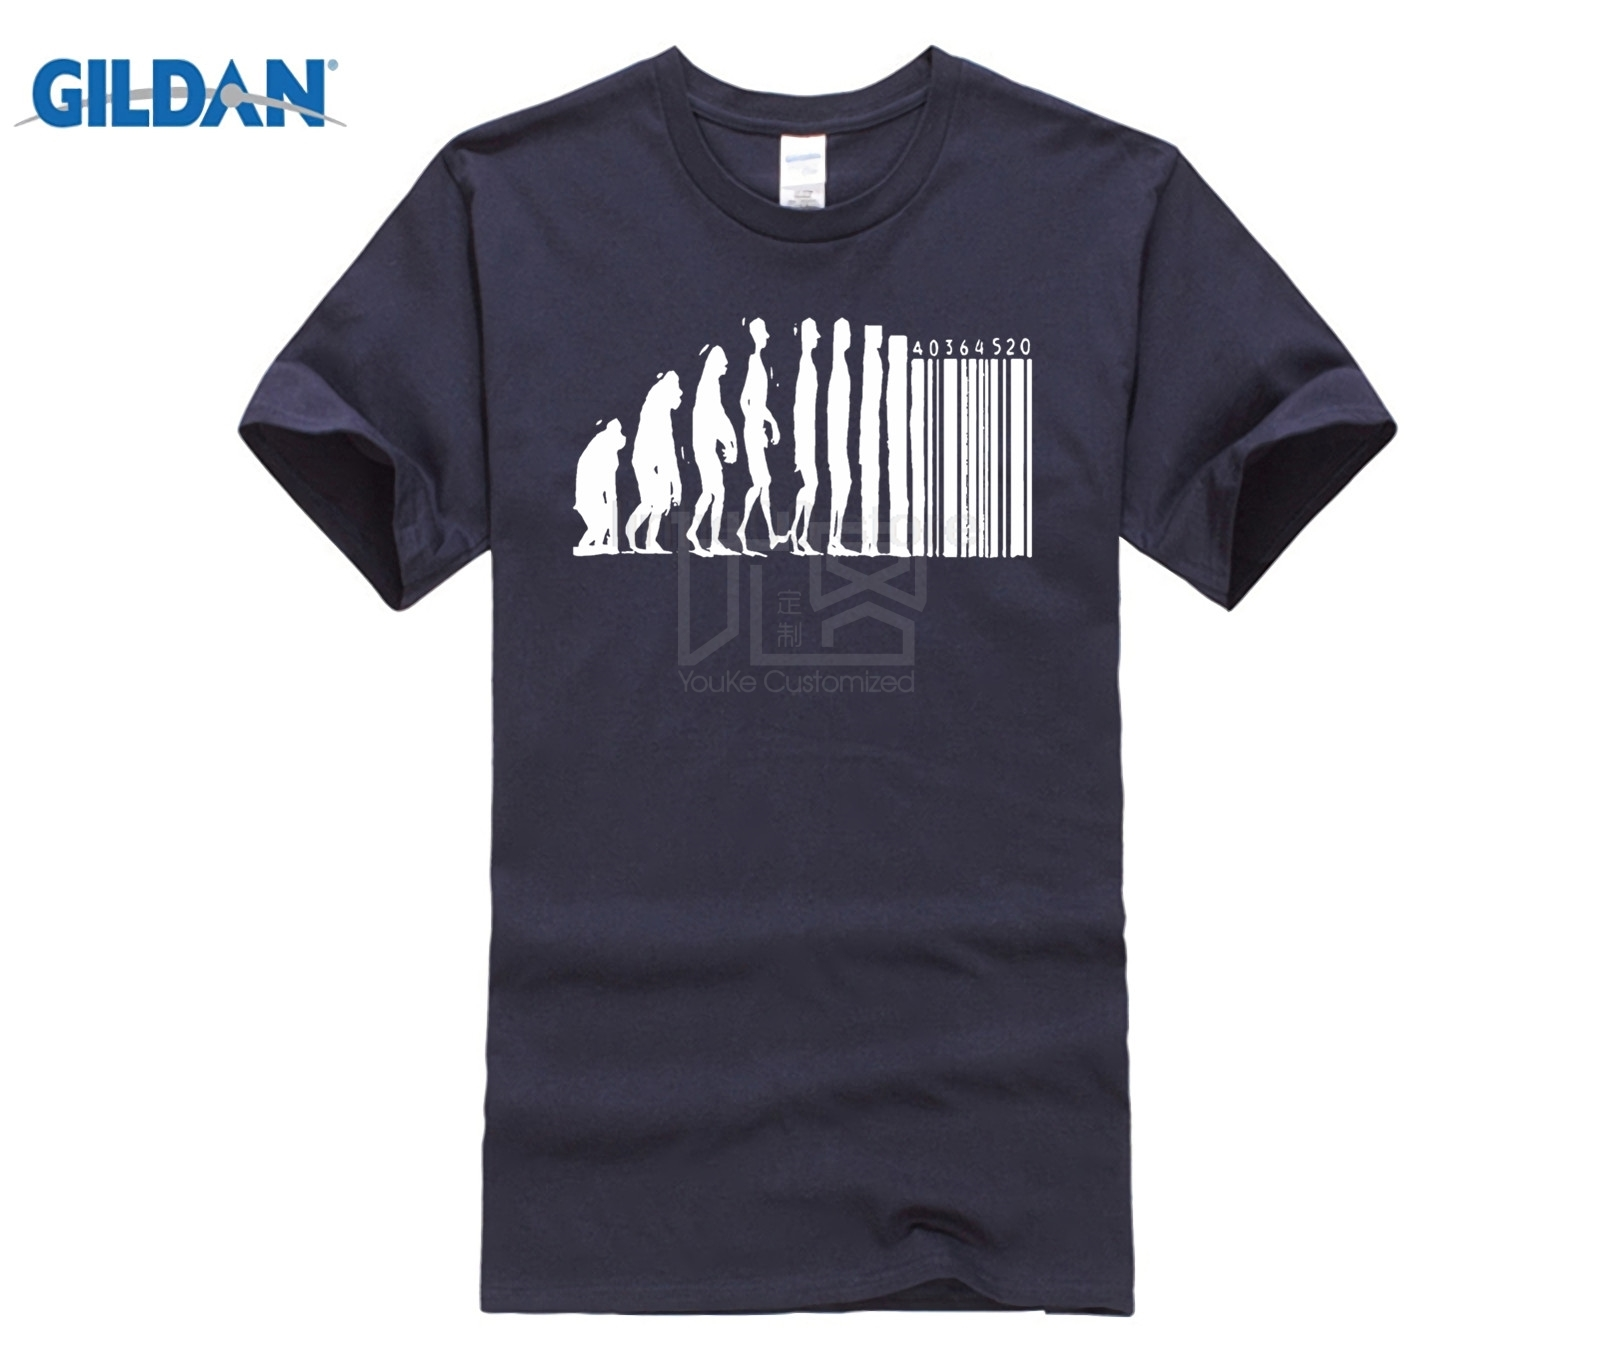 GILDAN T Shirts Human Evolution Banksy Mankind Monkey Barcode Capitalism Anarchy Tee shirt Design Website image